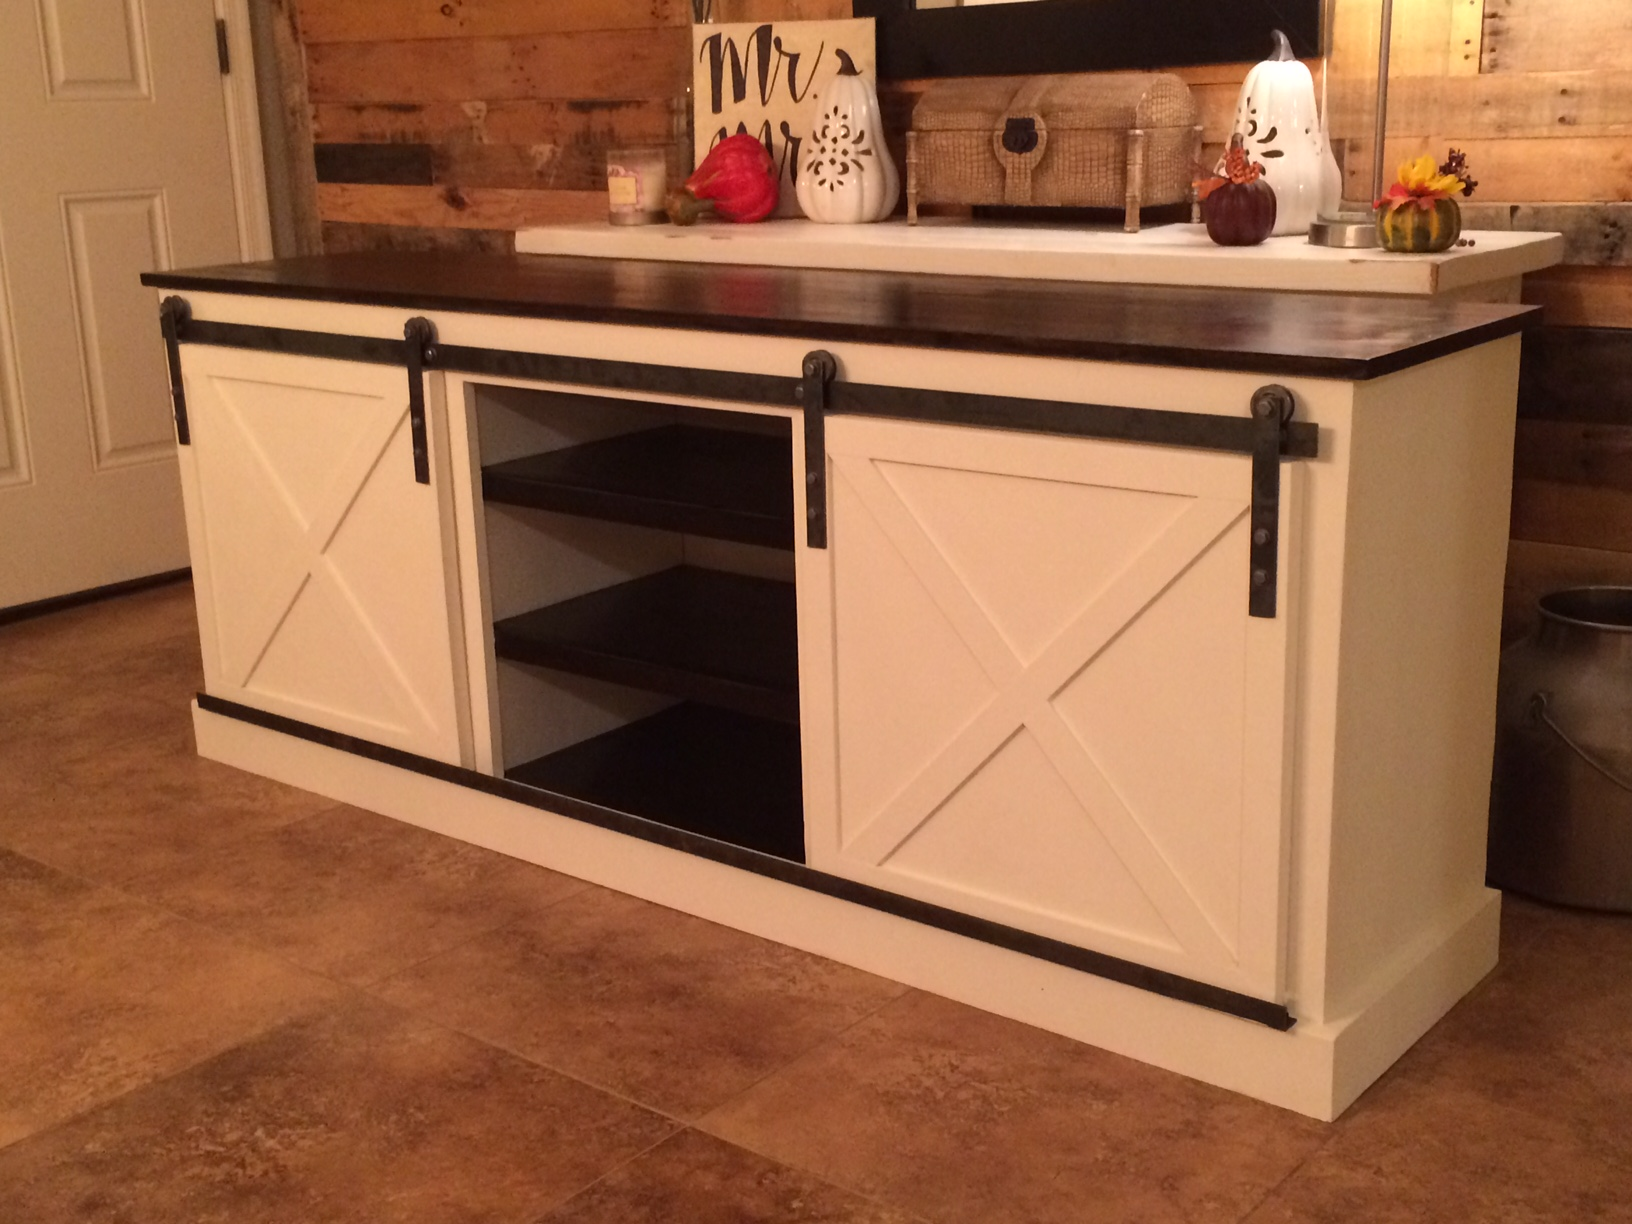 Wall Cabinets For Bathroom